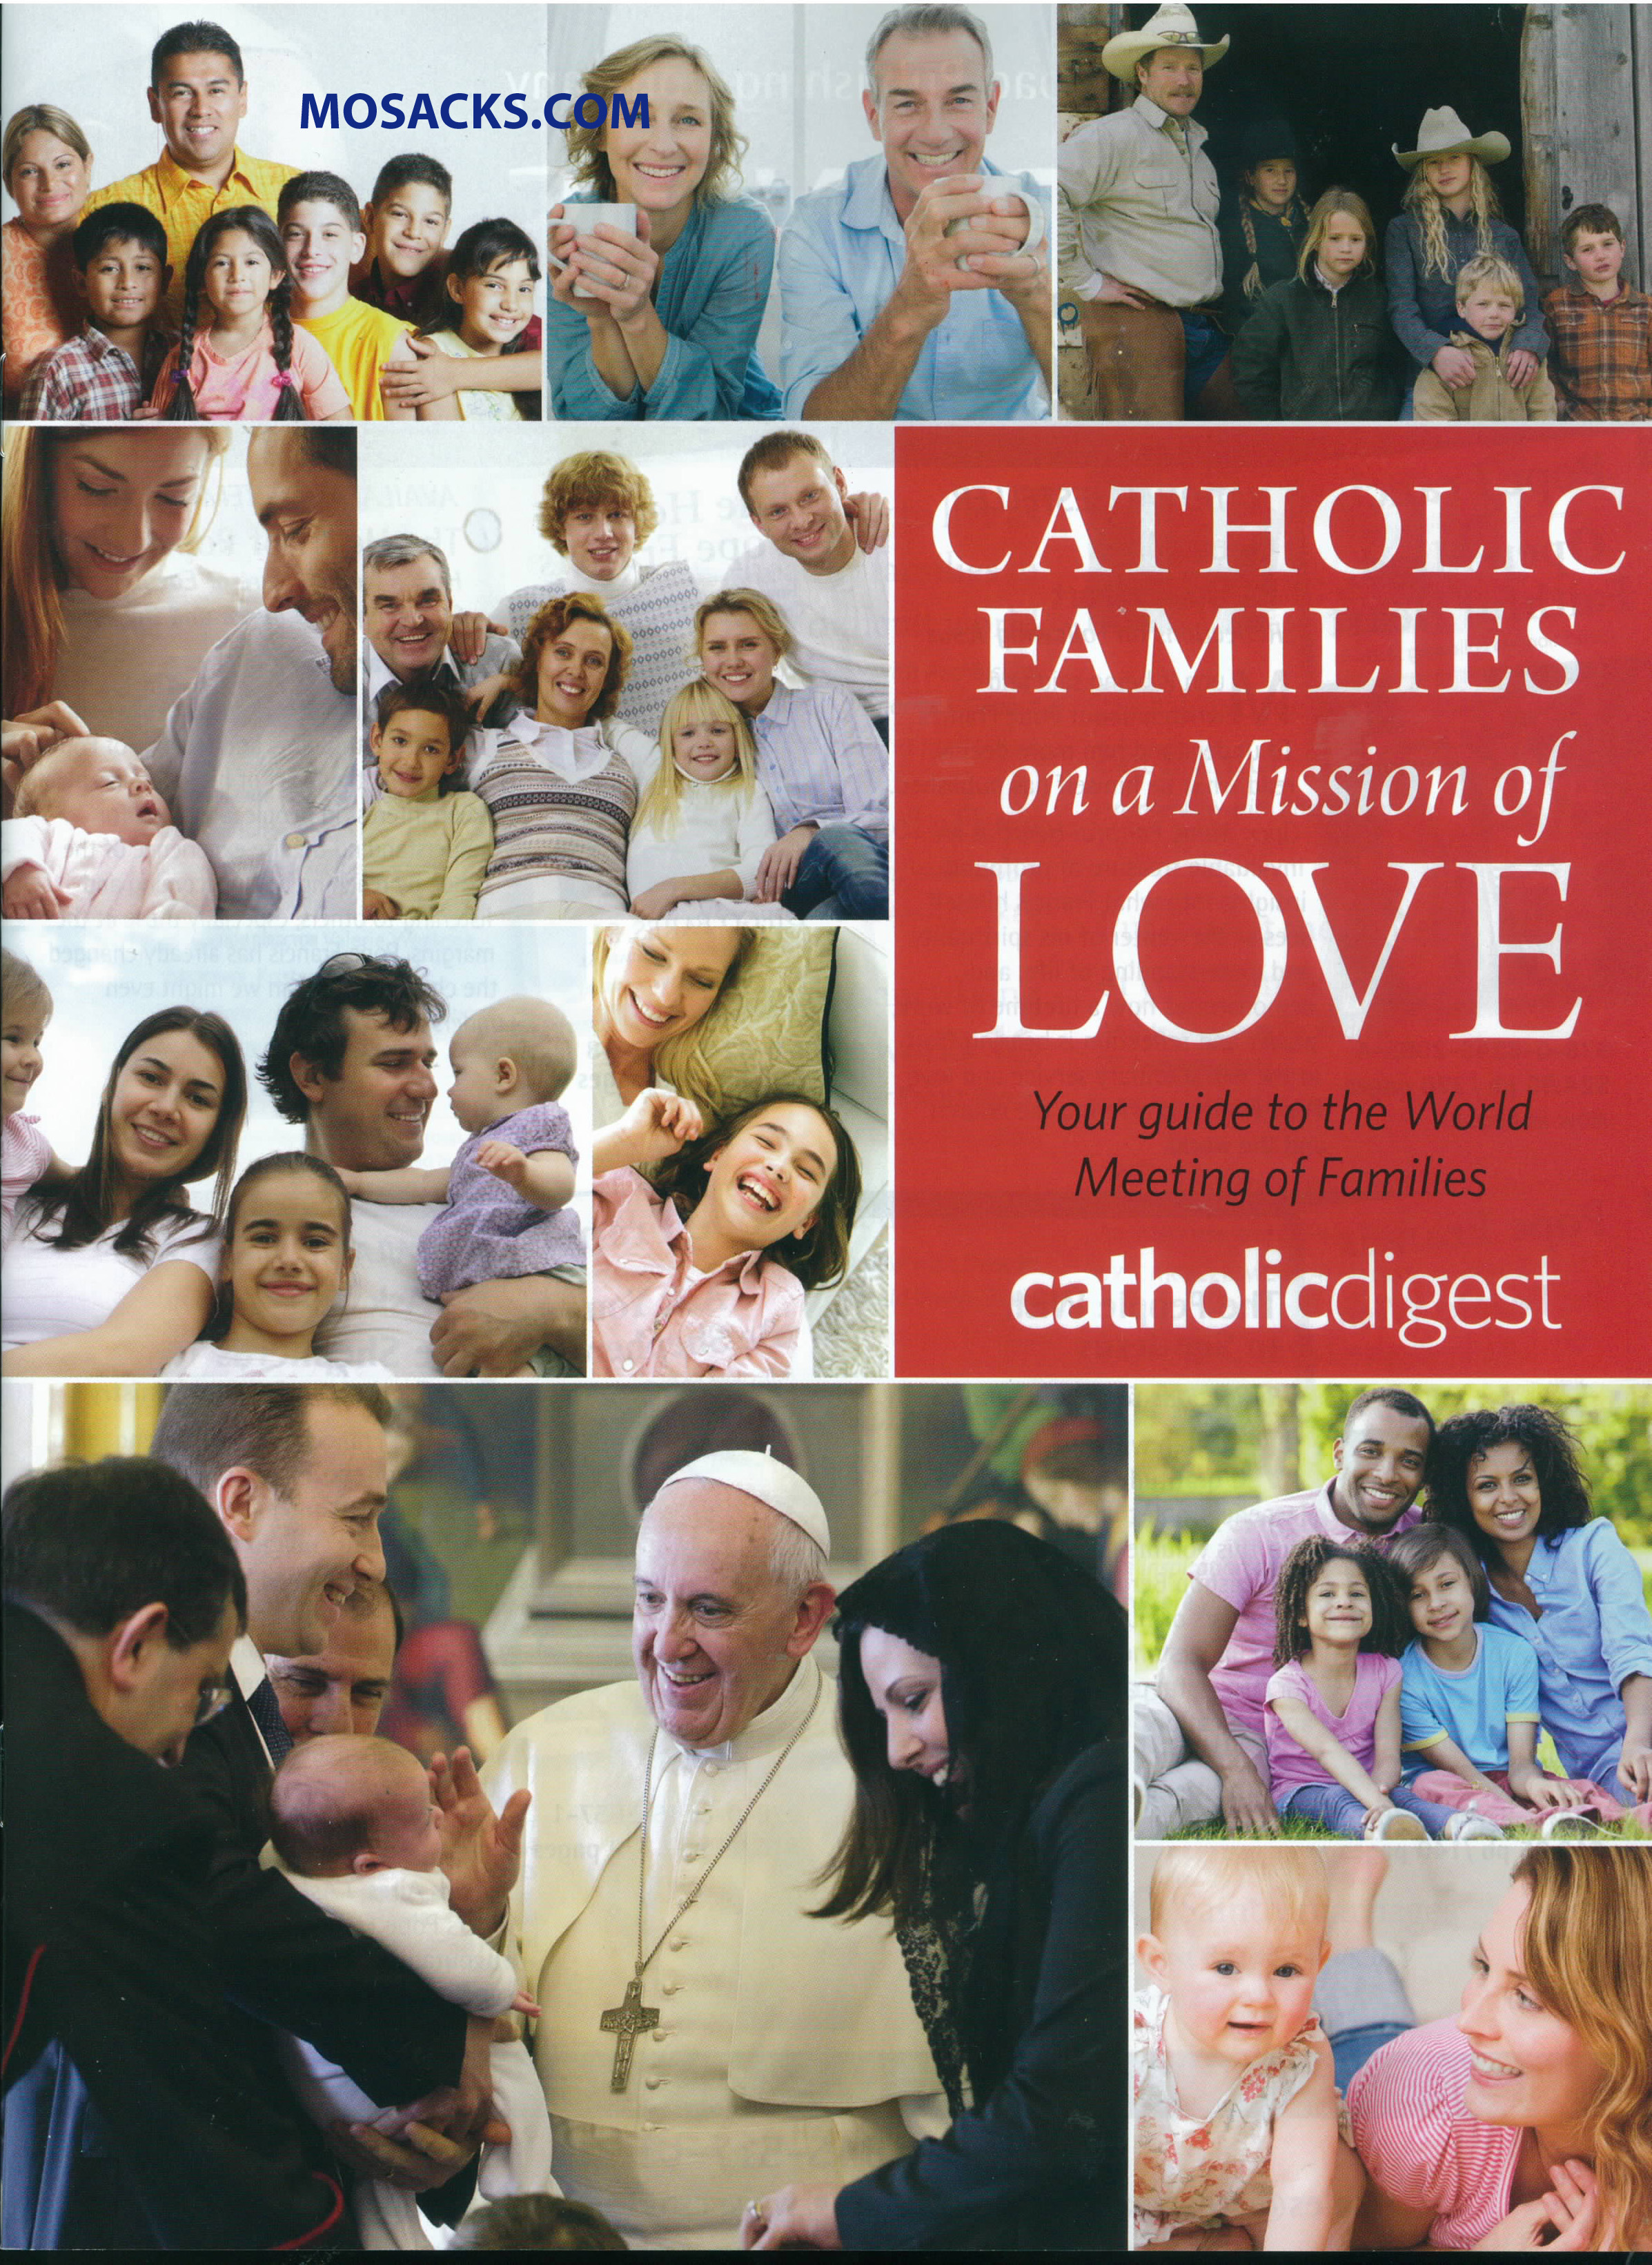 Pope Francis Catholic Families Mission Of Love 2015 Catholic Digest 84-CATH